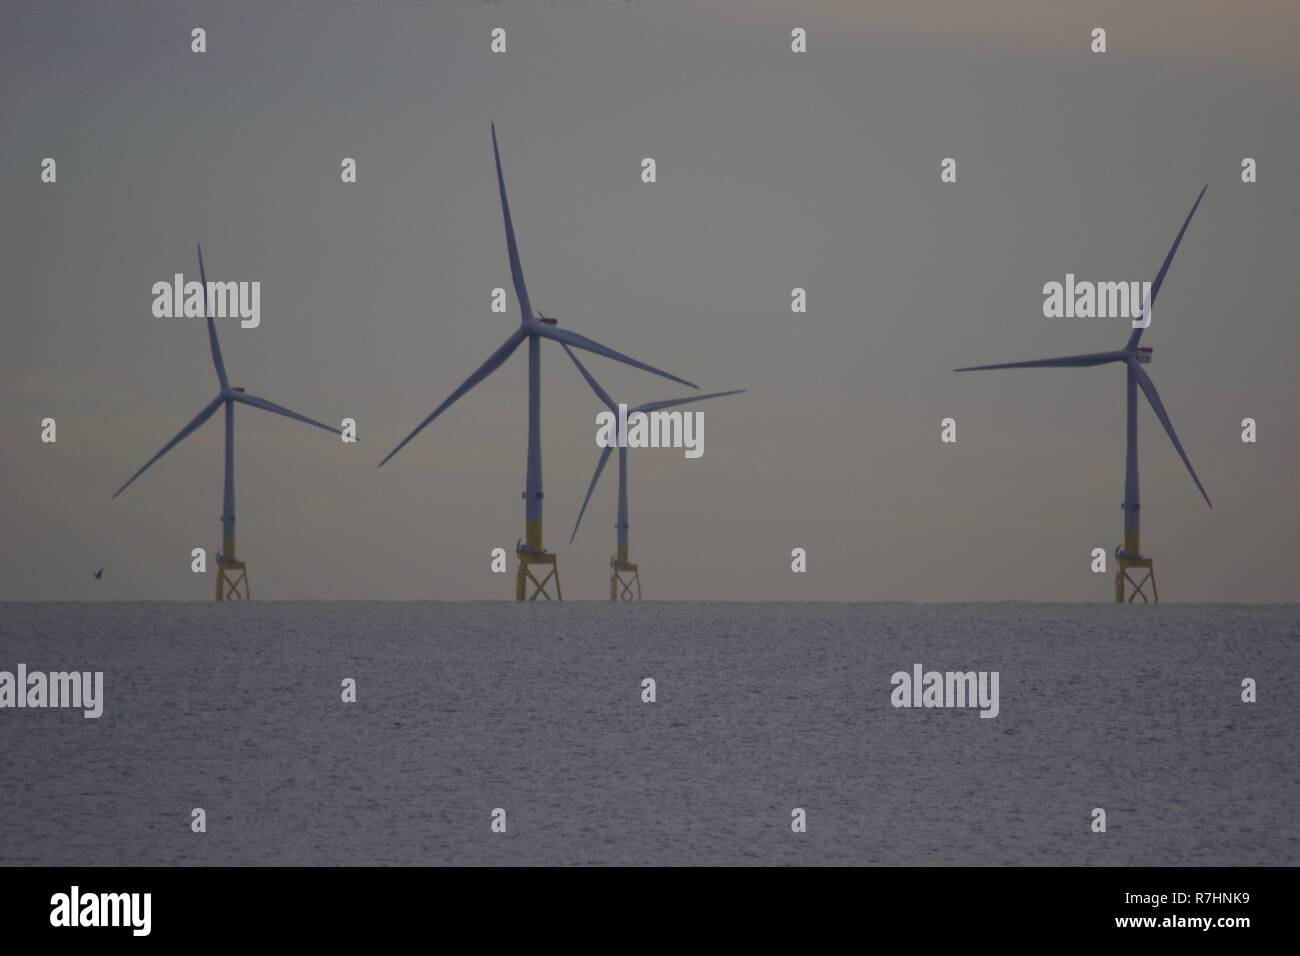 European Offshore Wind Deployment Centre. Renewable Energy Wind Farm, Offshore Aberdeen. 4 Wind Turbines in the North Sea on a Grey Day. Scotland, UK. - Stock Image